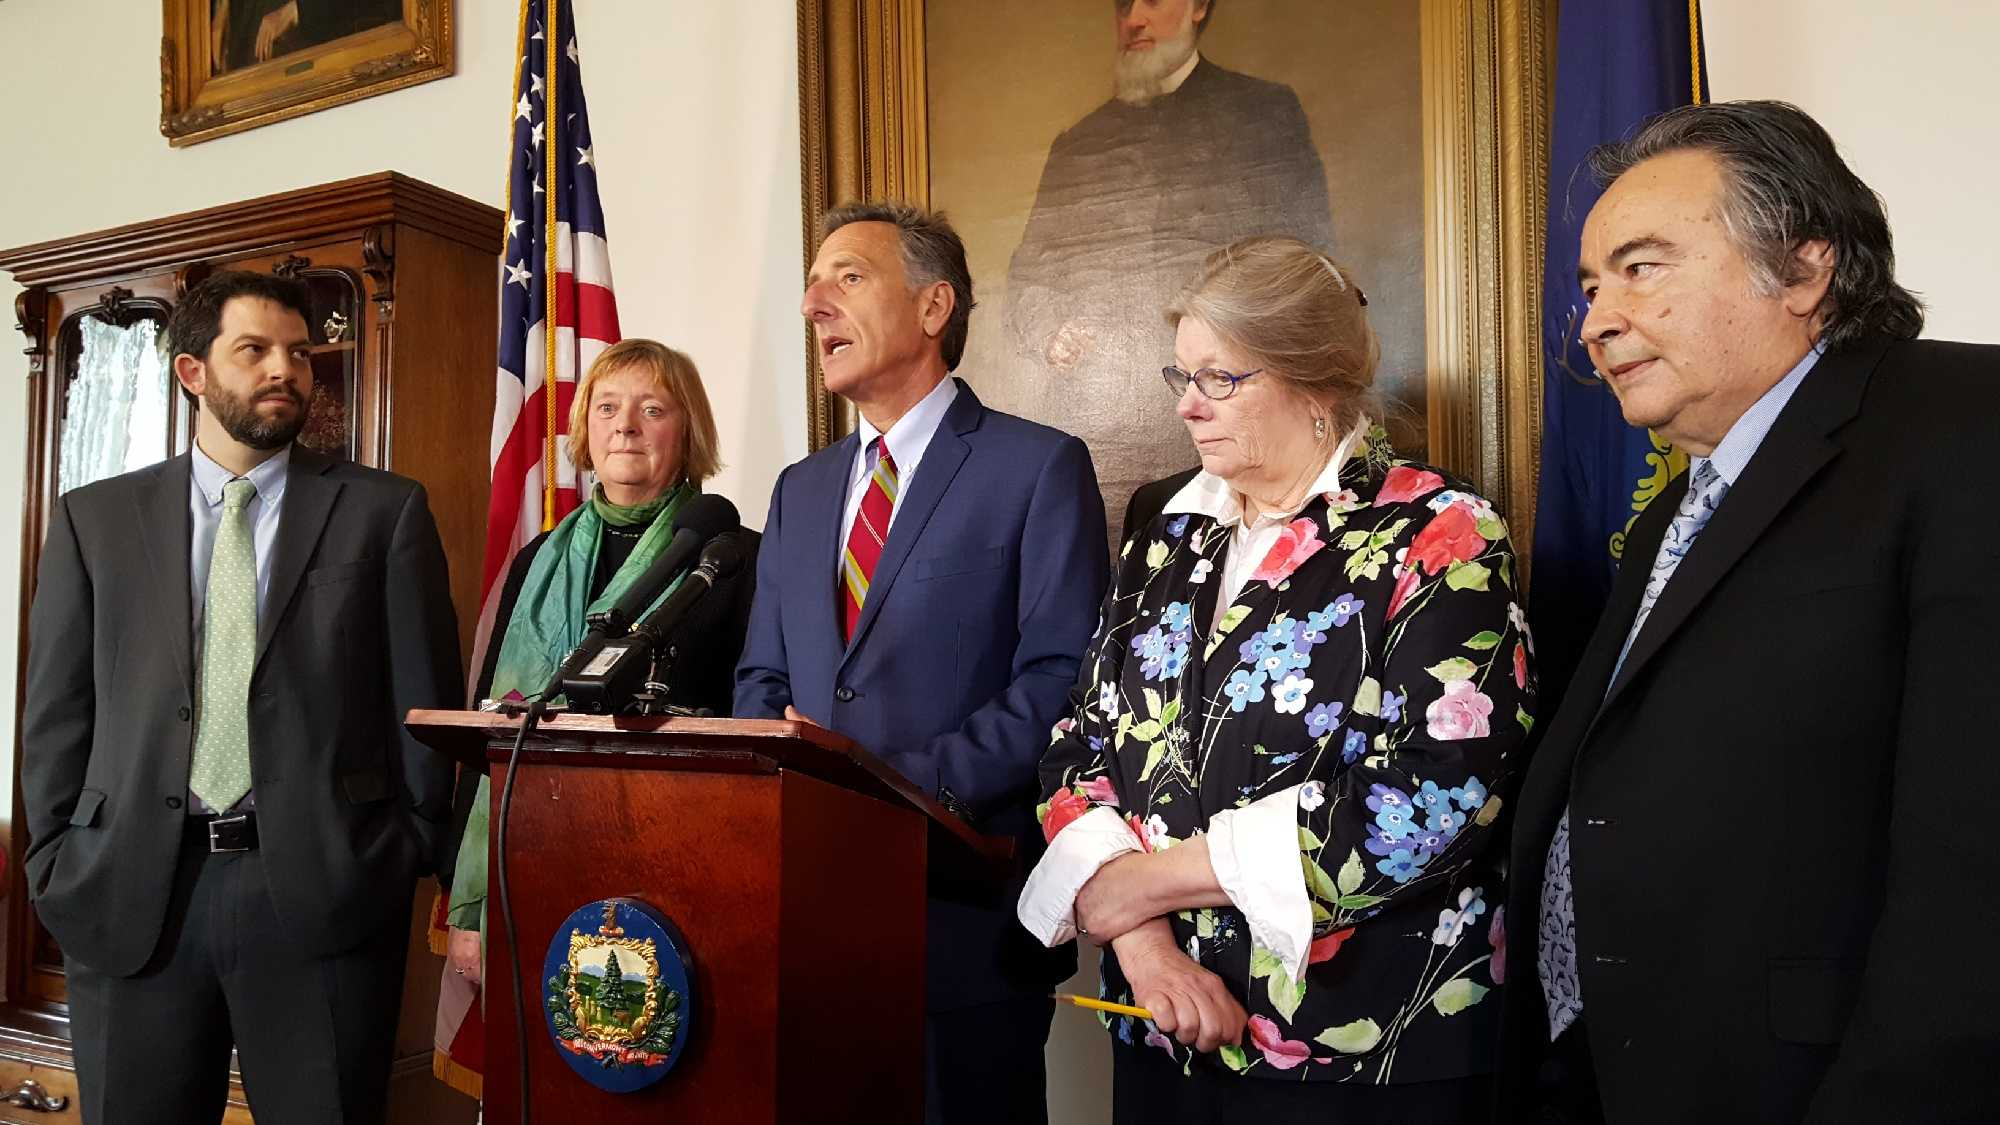 Gov. Shumlin speaks at the Statehouse Thursday, flanked by Reps. Chris Pearson and Mary Sullivan and Sens. Jeanette White and Anthony Pollina.